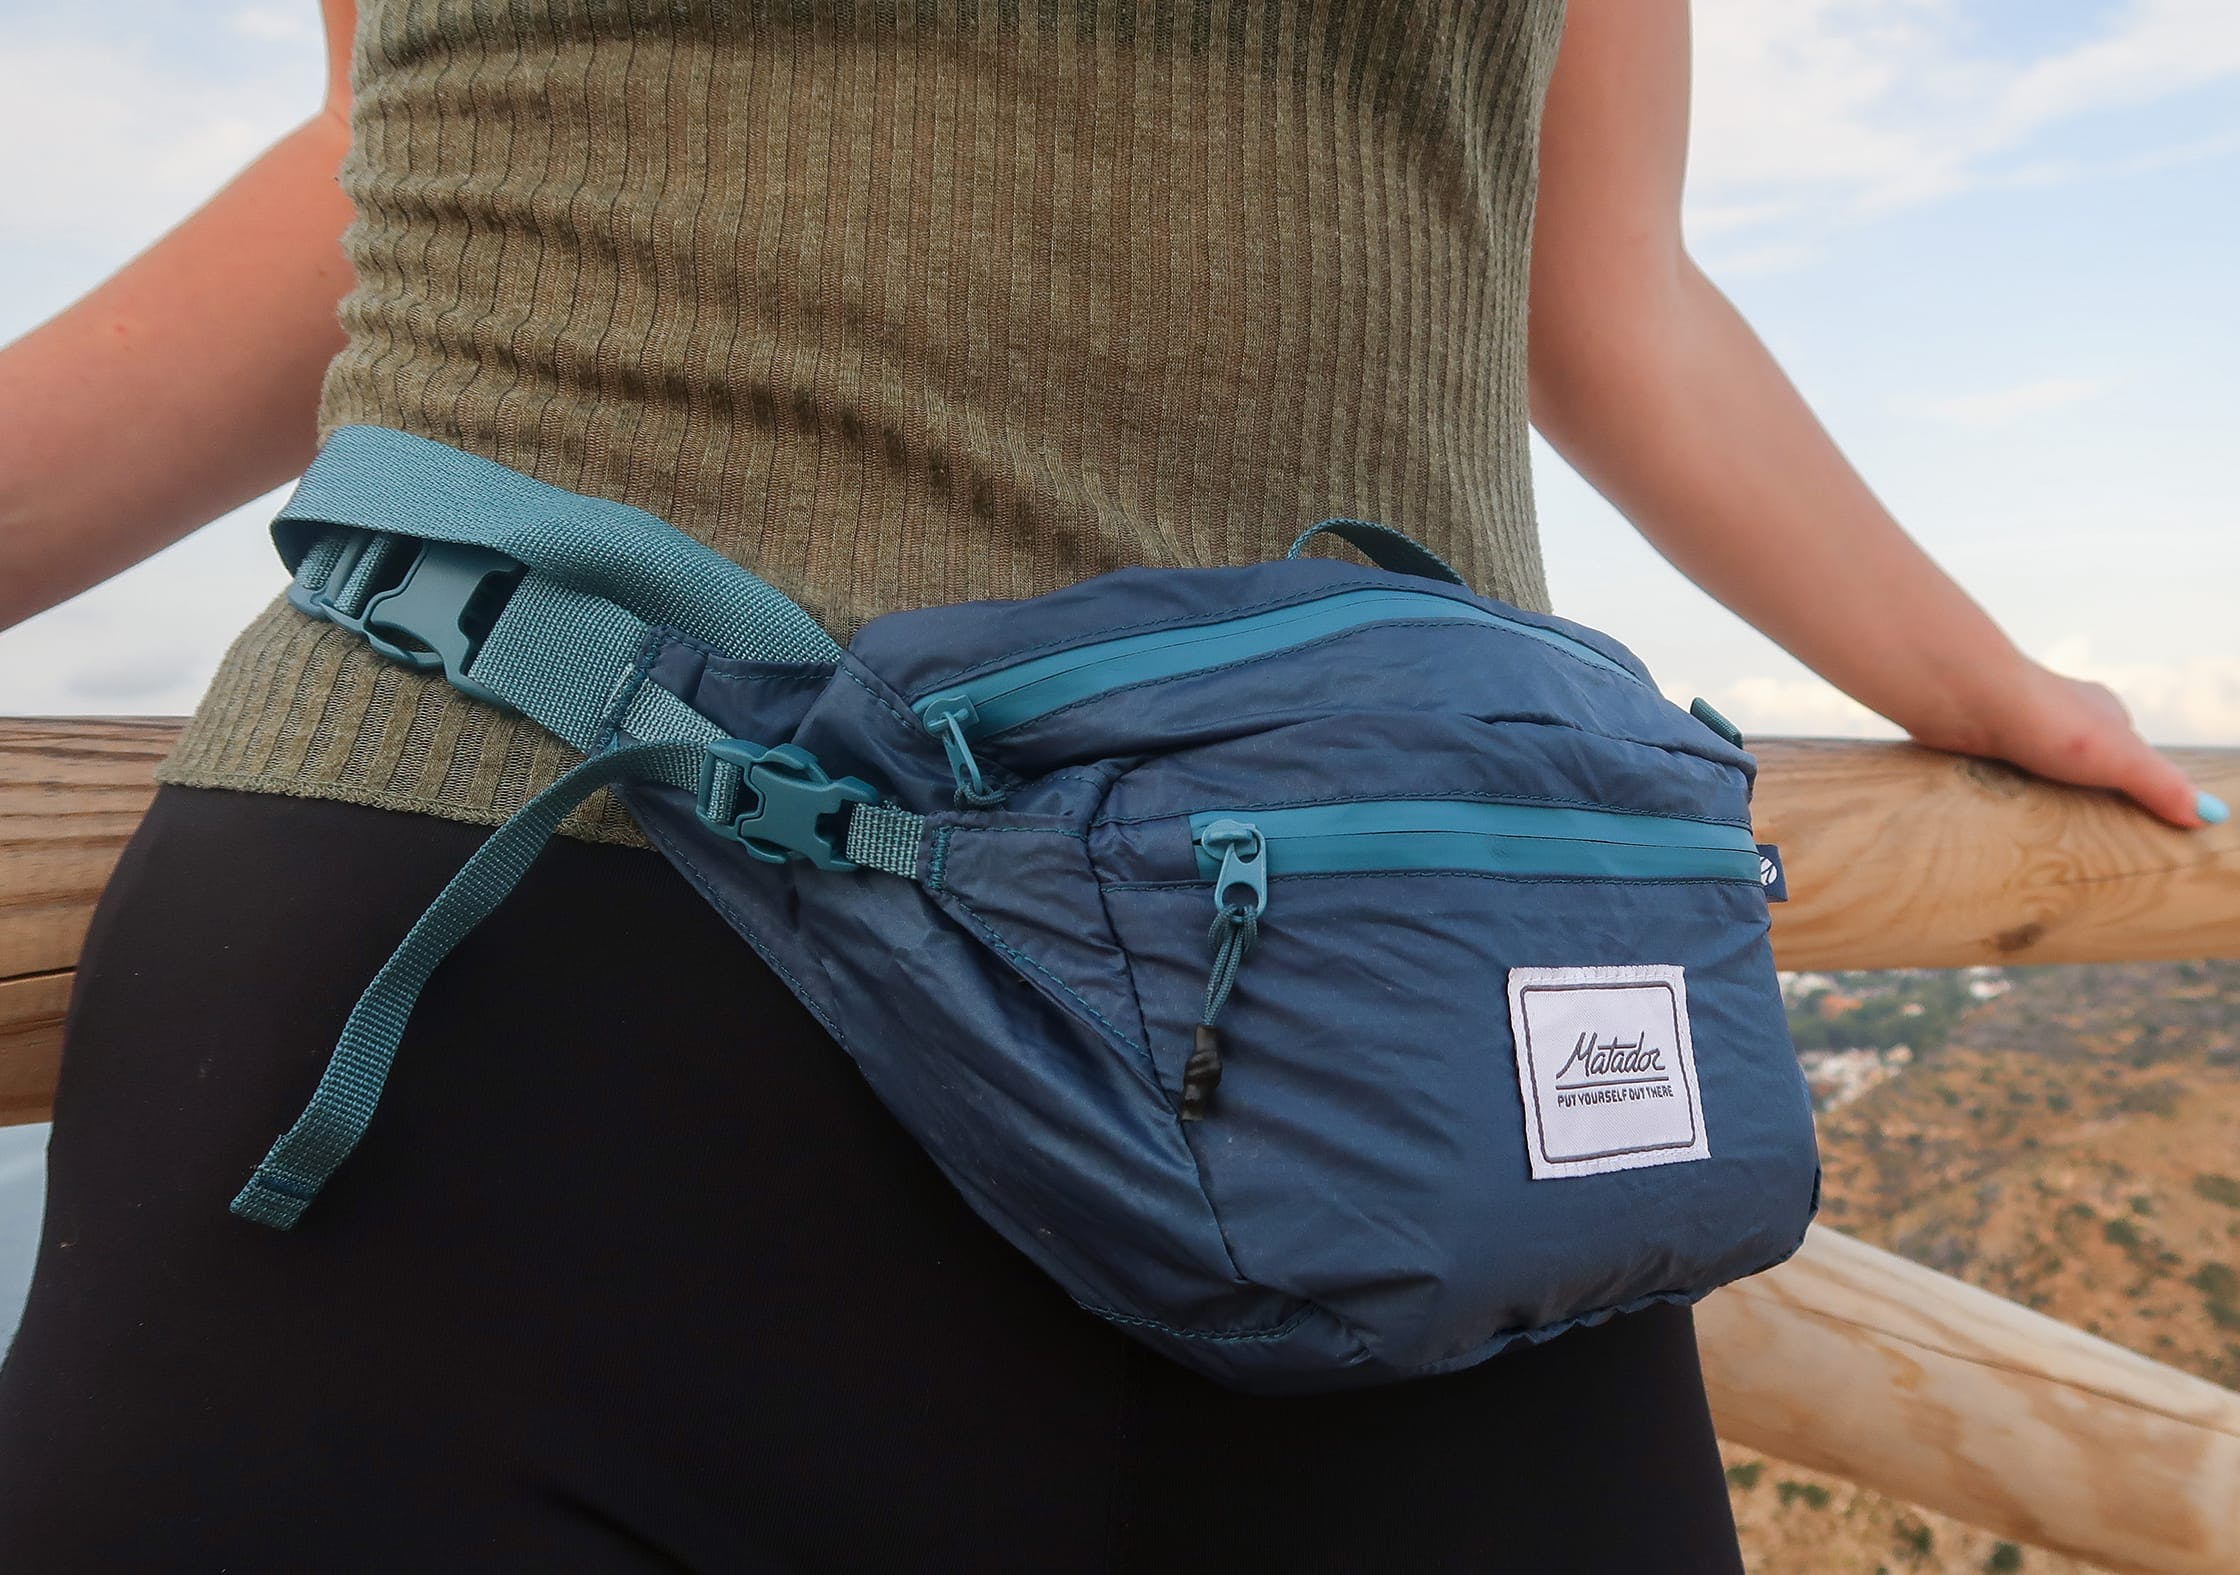 Matador Hip Pack In Javea, Spain 2